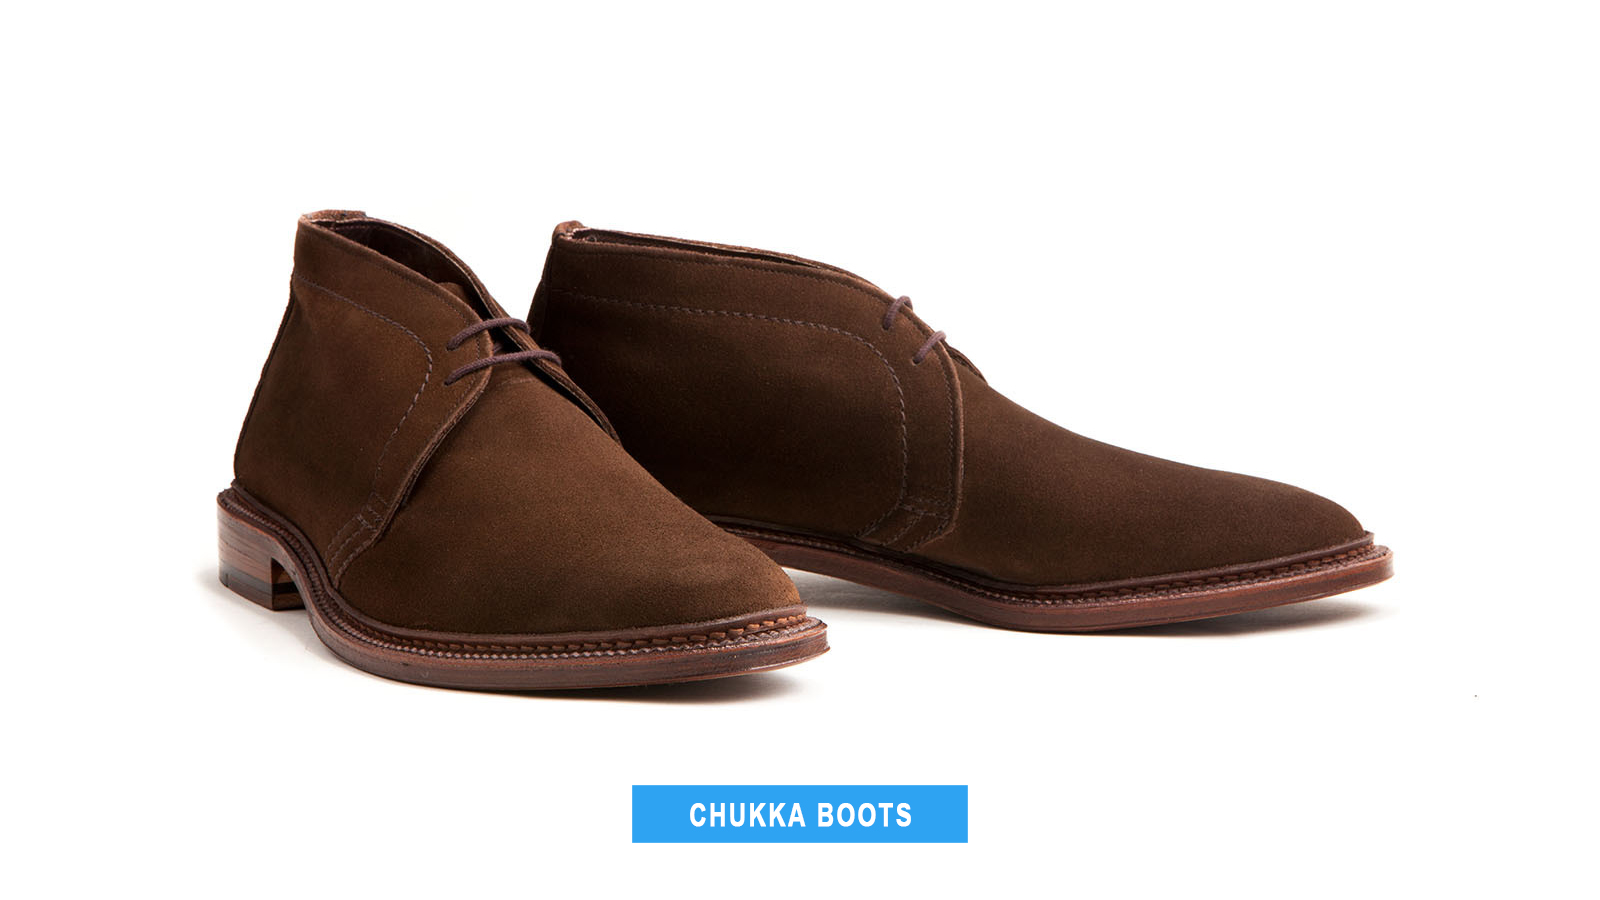 chukka suede boot shoe style for